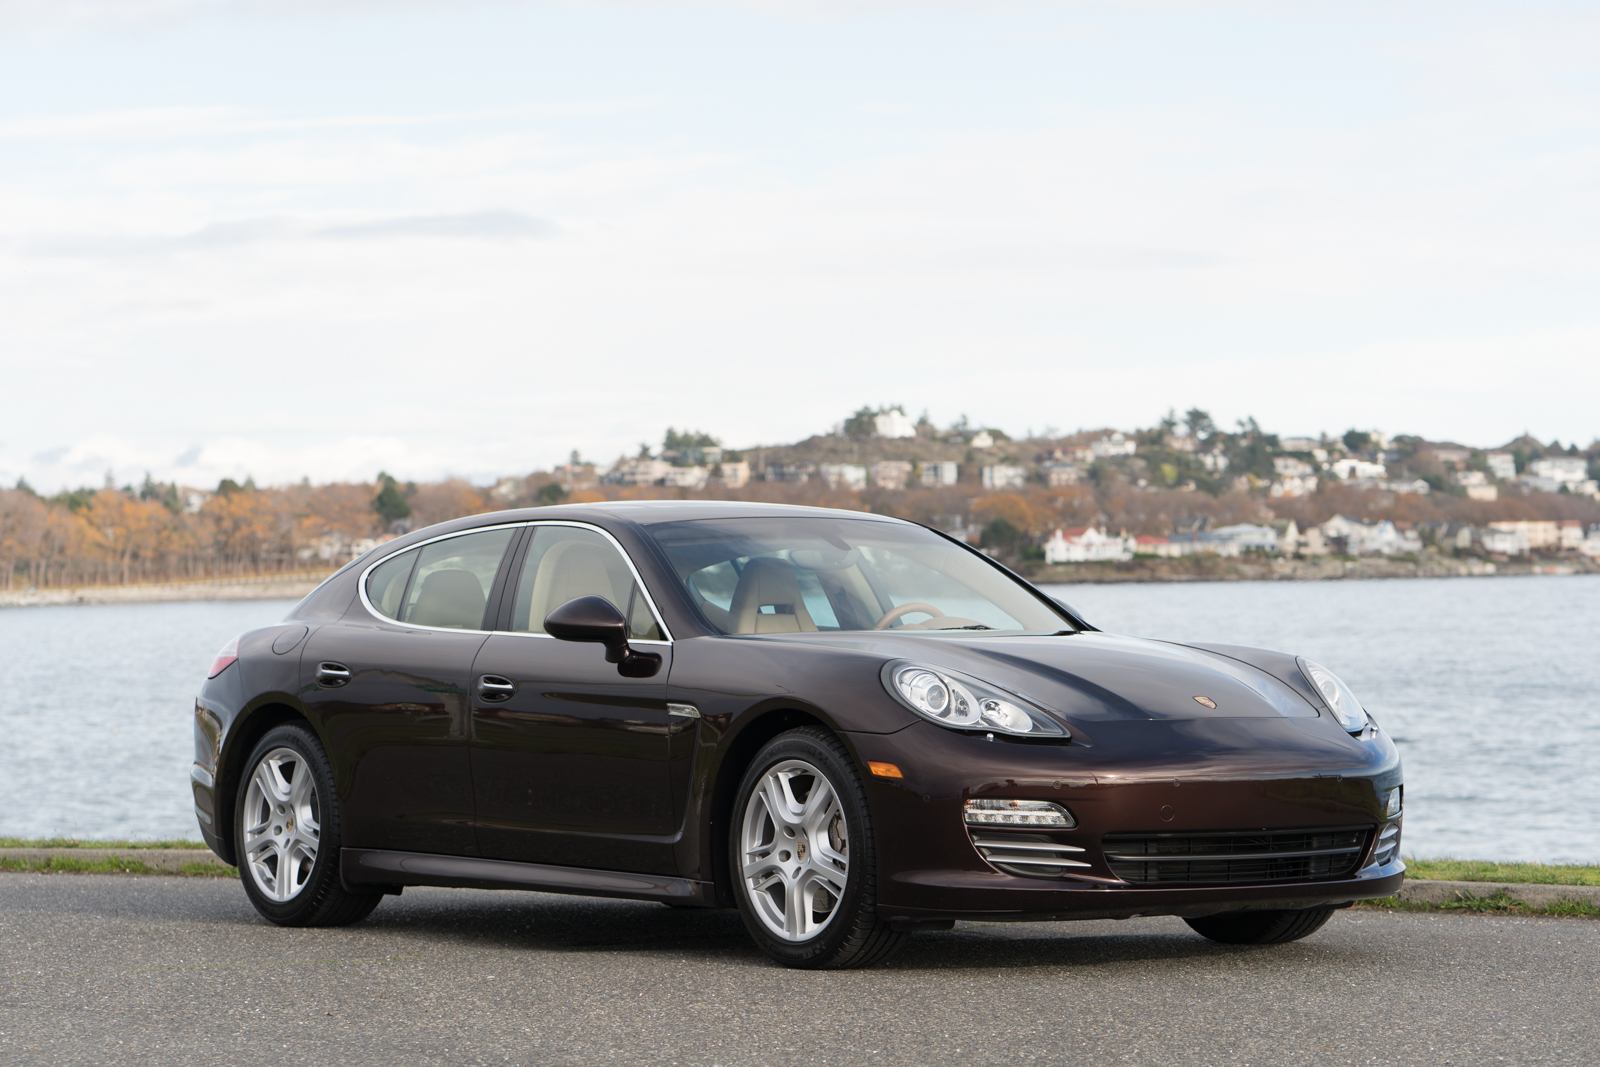 2010 porsche panamera 4s silver arrow cars ltd. Black Bedroom Furniture Sets. Home Design Ideas